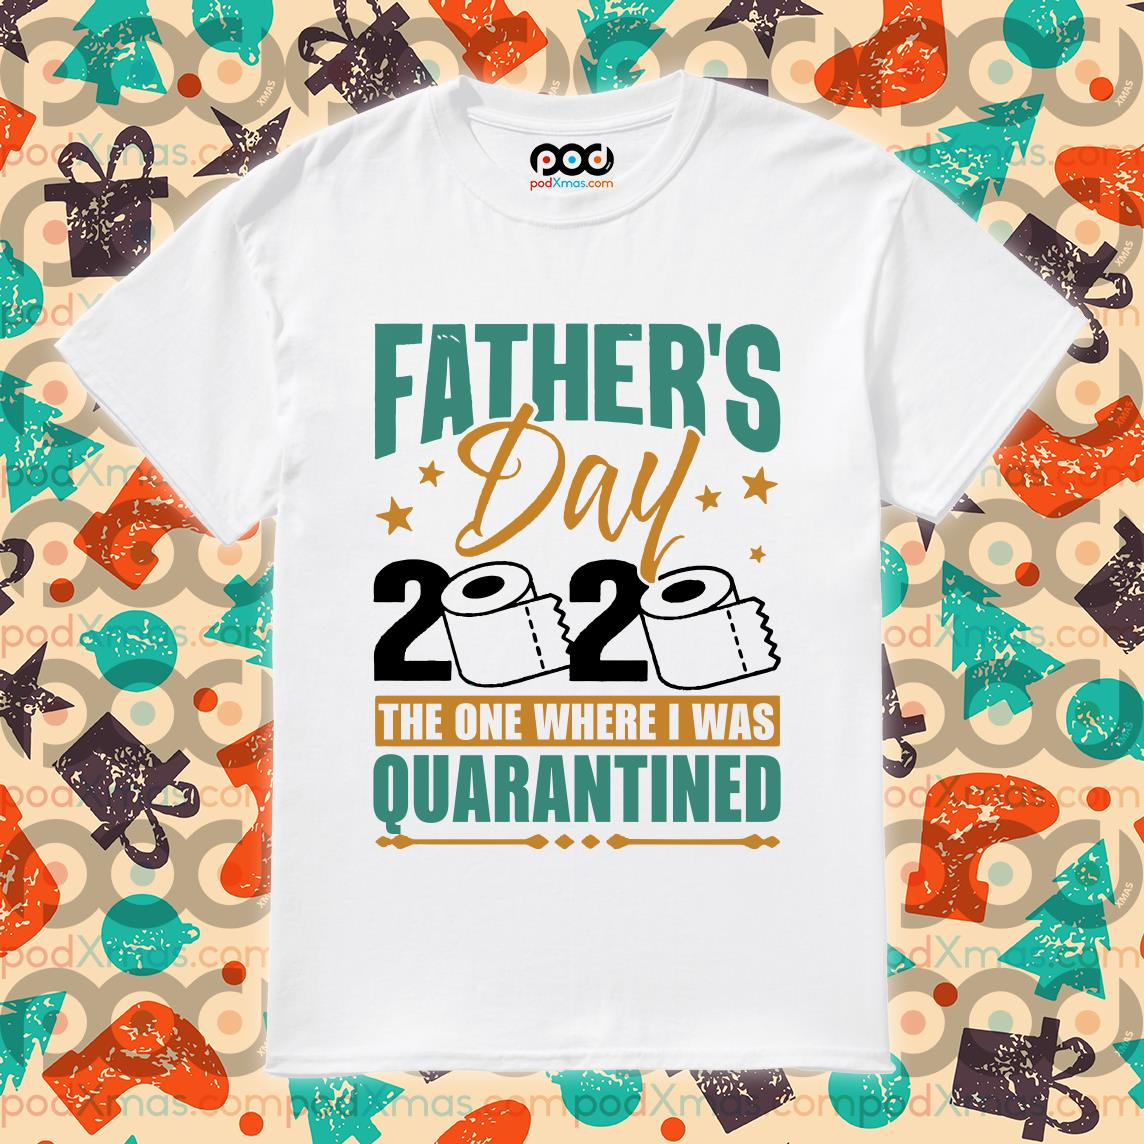 fathers day 2020 the one where i was quarantined shirt